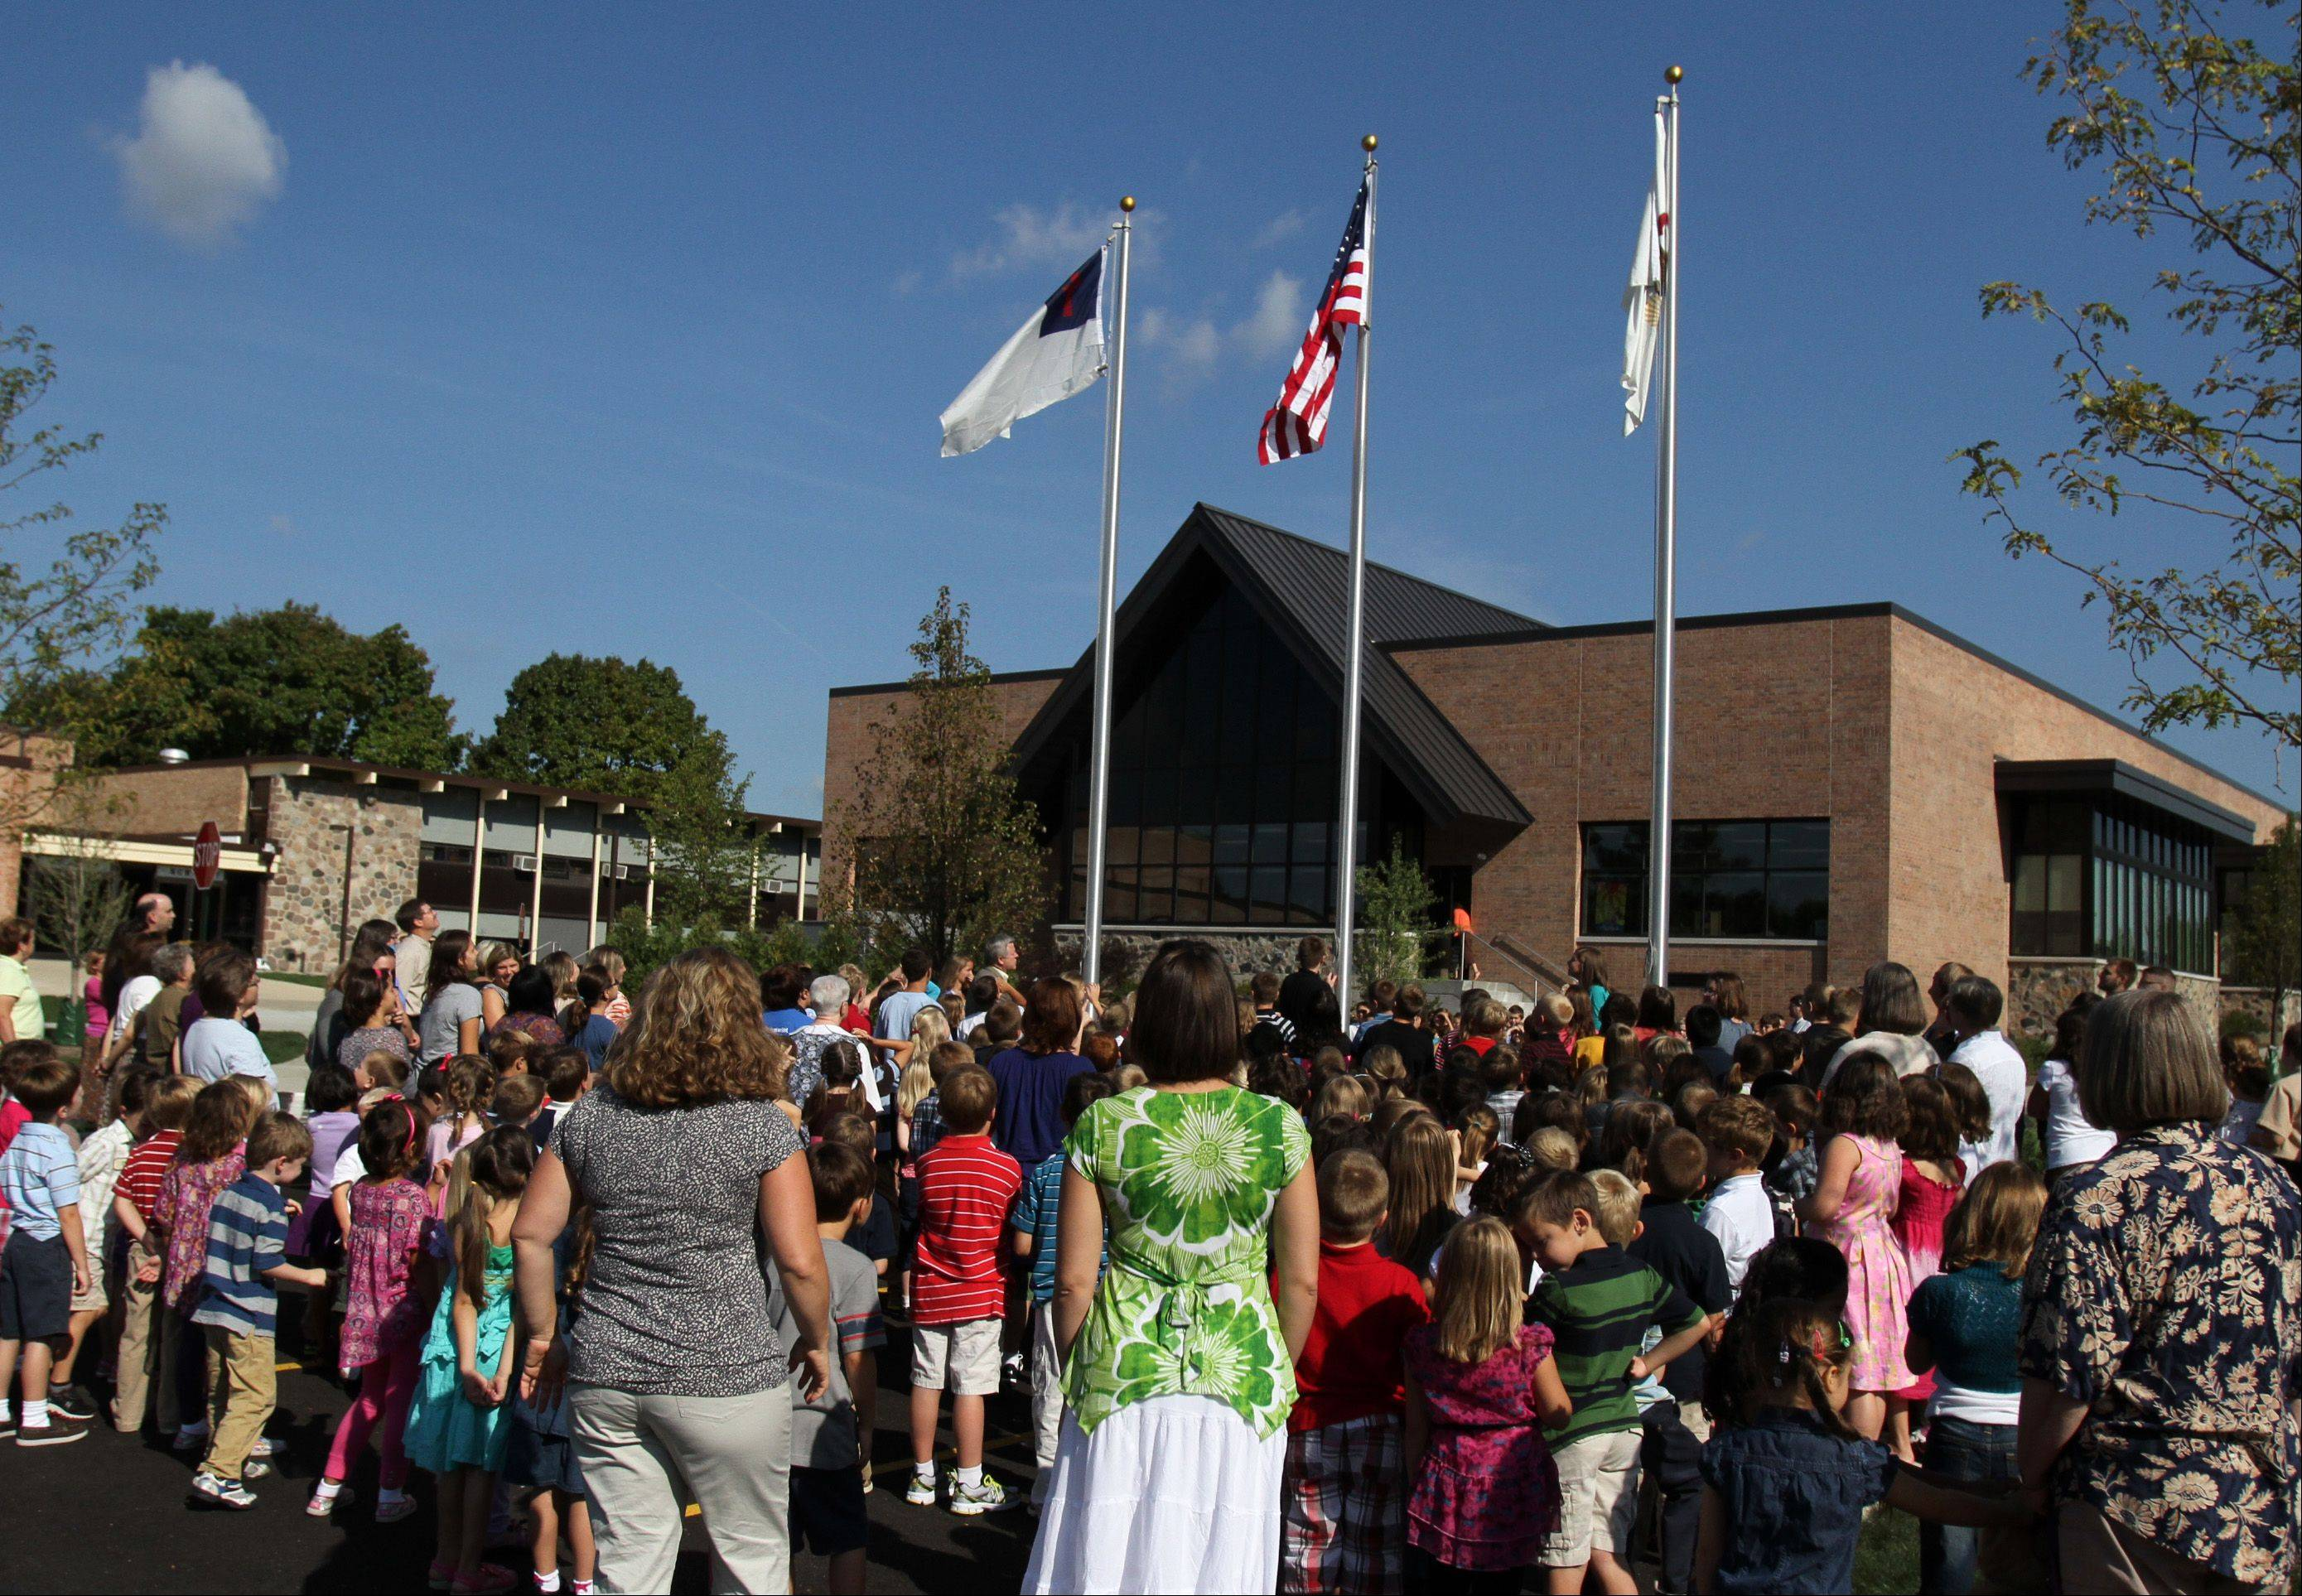 More than 500 students and faculty gathered in front of St. Peter Lutheran School on Monday for a flag raising on the first day of school. Students also celebrated the opening of the school's new 17,000-square-foot wing that includes an assembly area and four new preschool rooms.